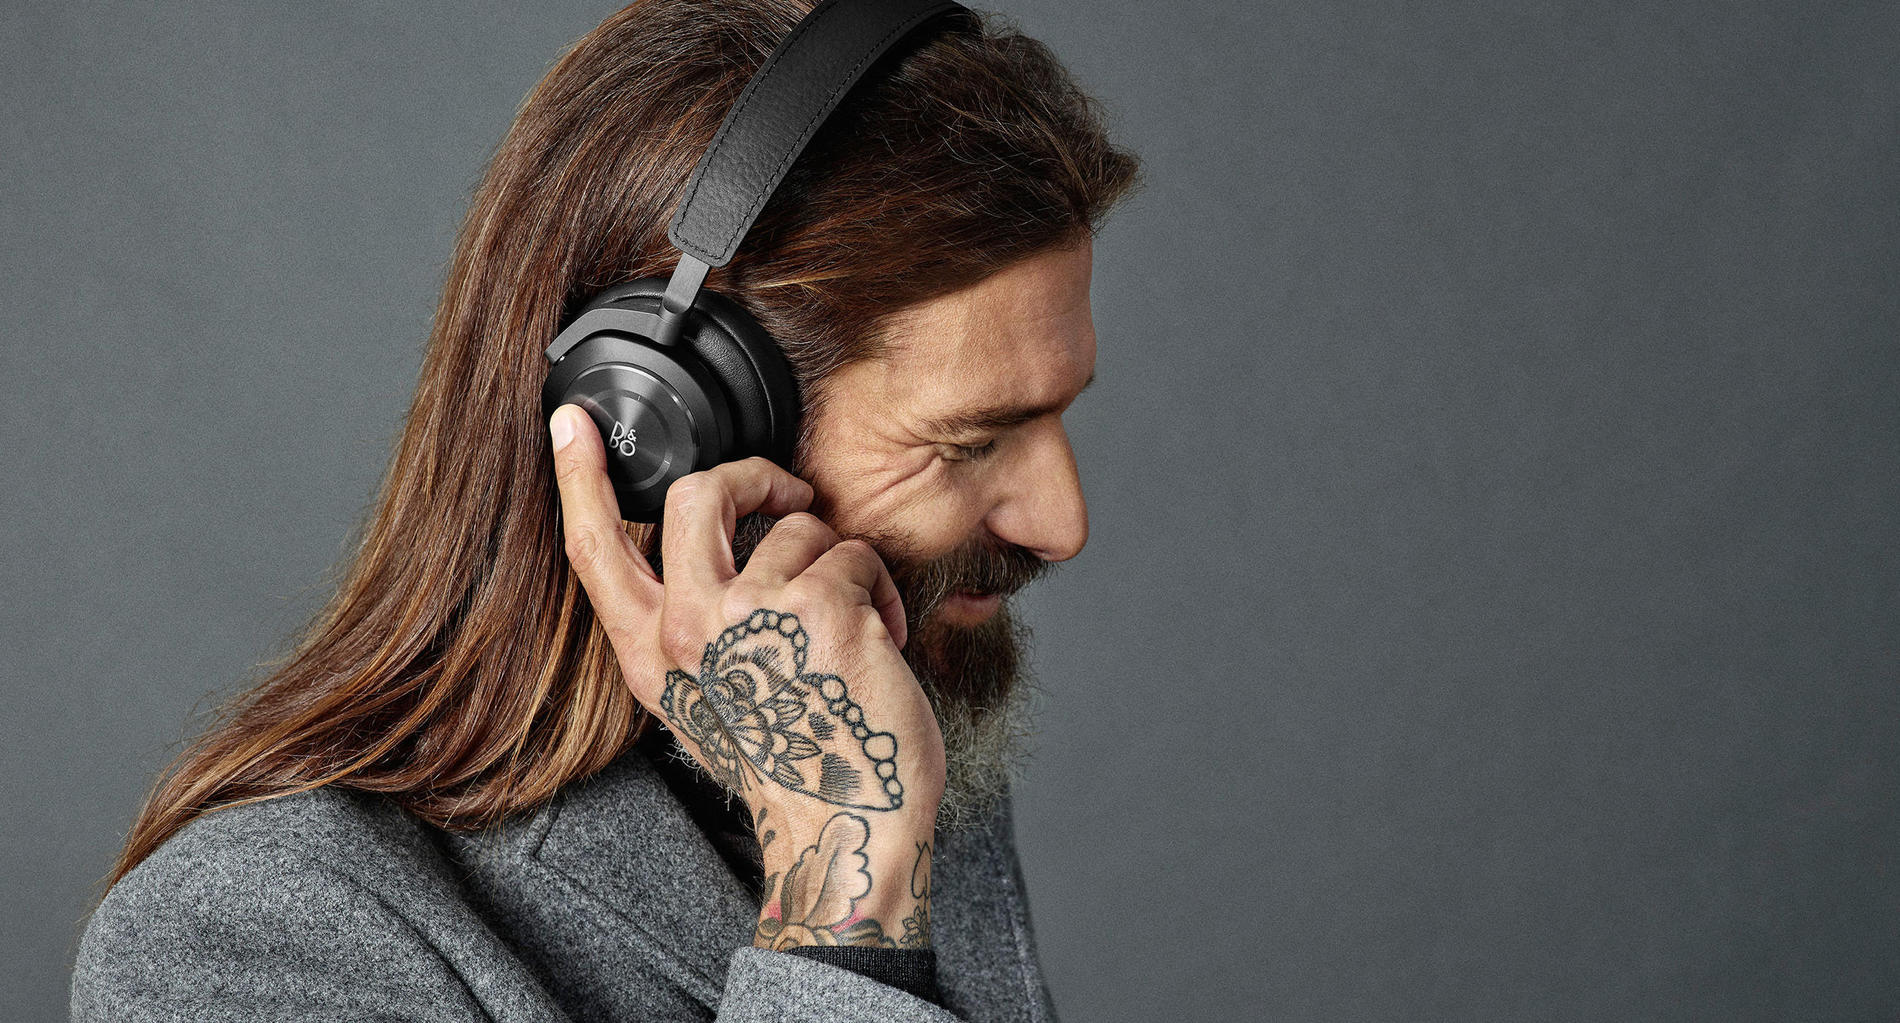 Beoplay H9 Offer - RRP £449, our price £249